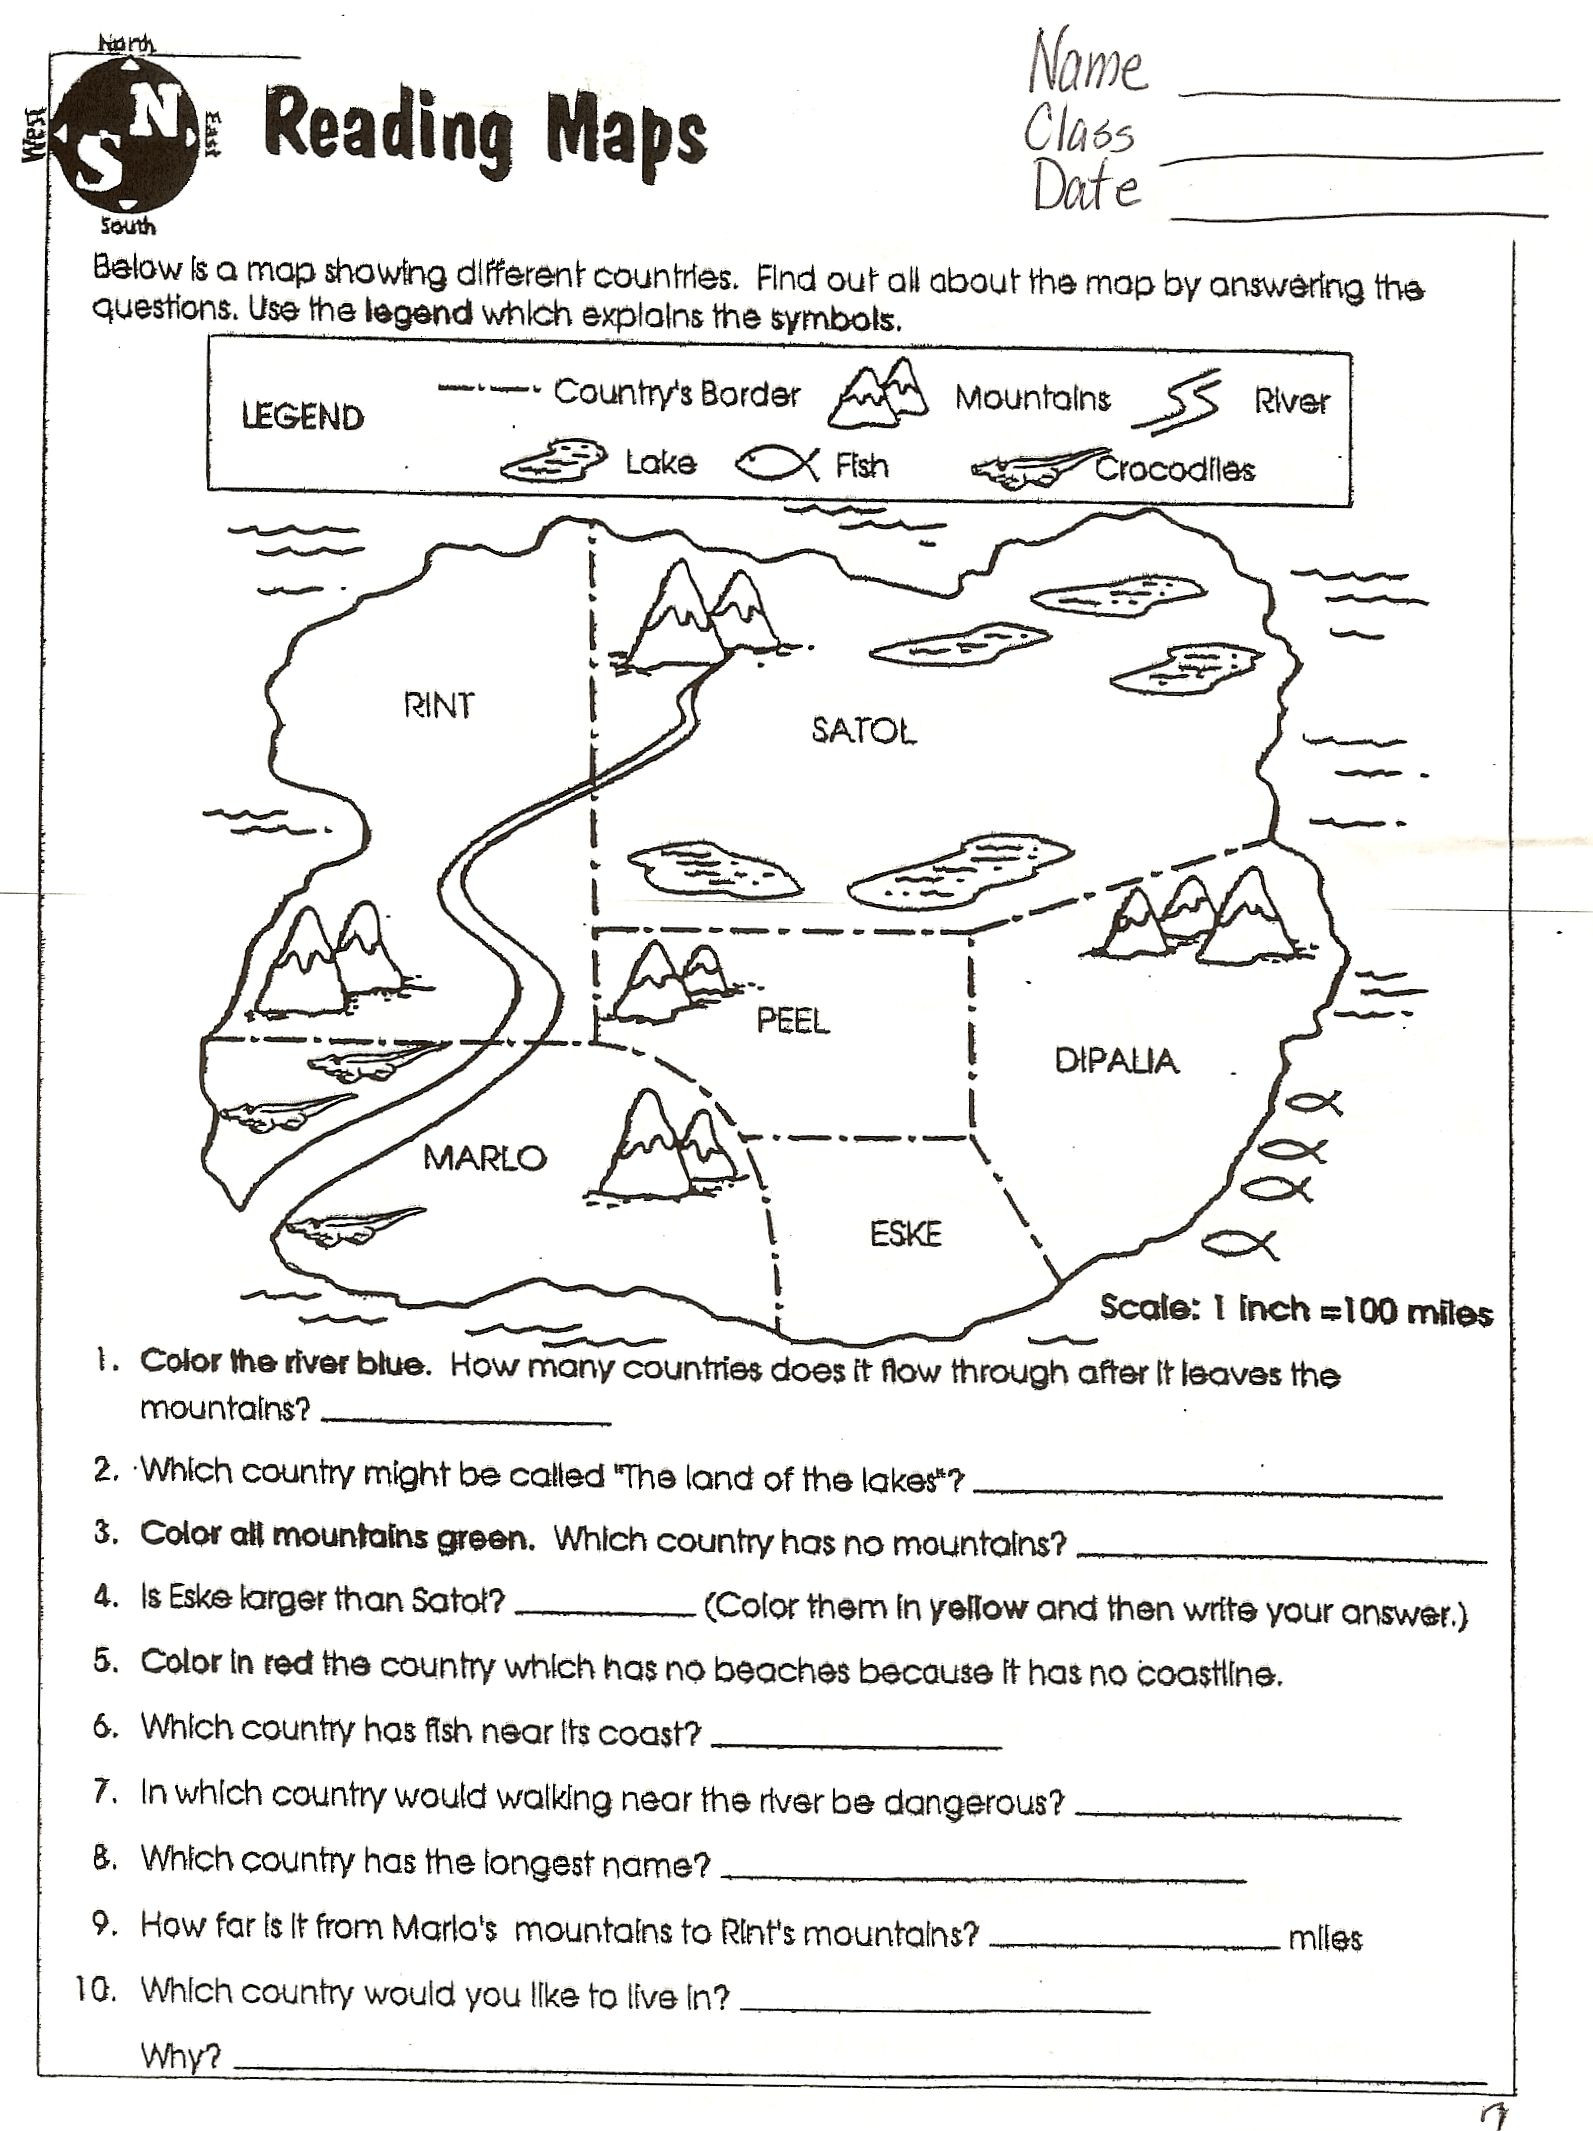 Second Grade social Studies Worksheets 4th Grade Worksheets social Stu S